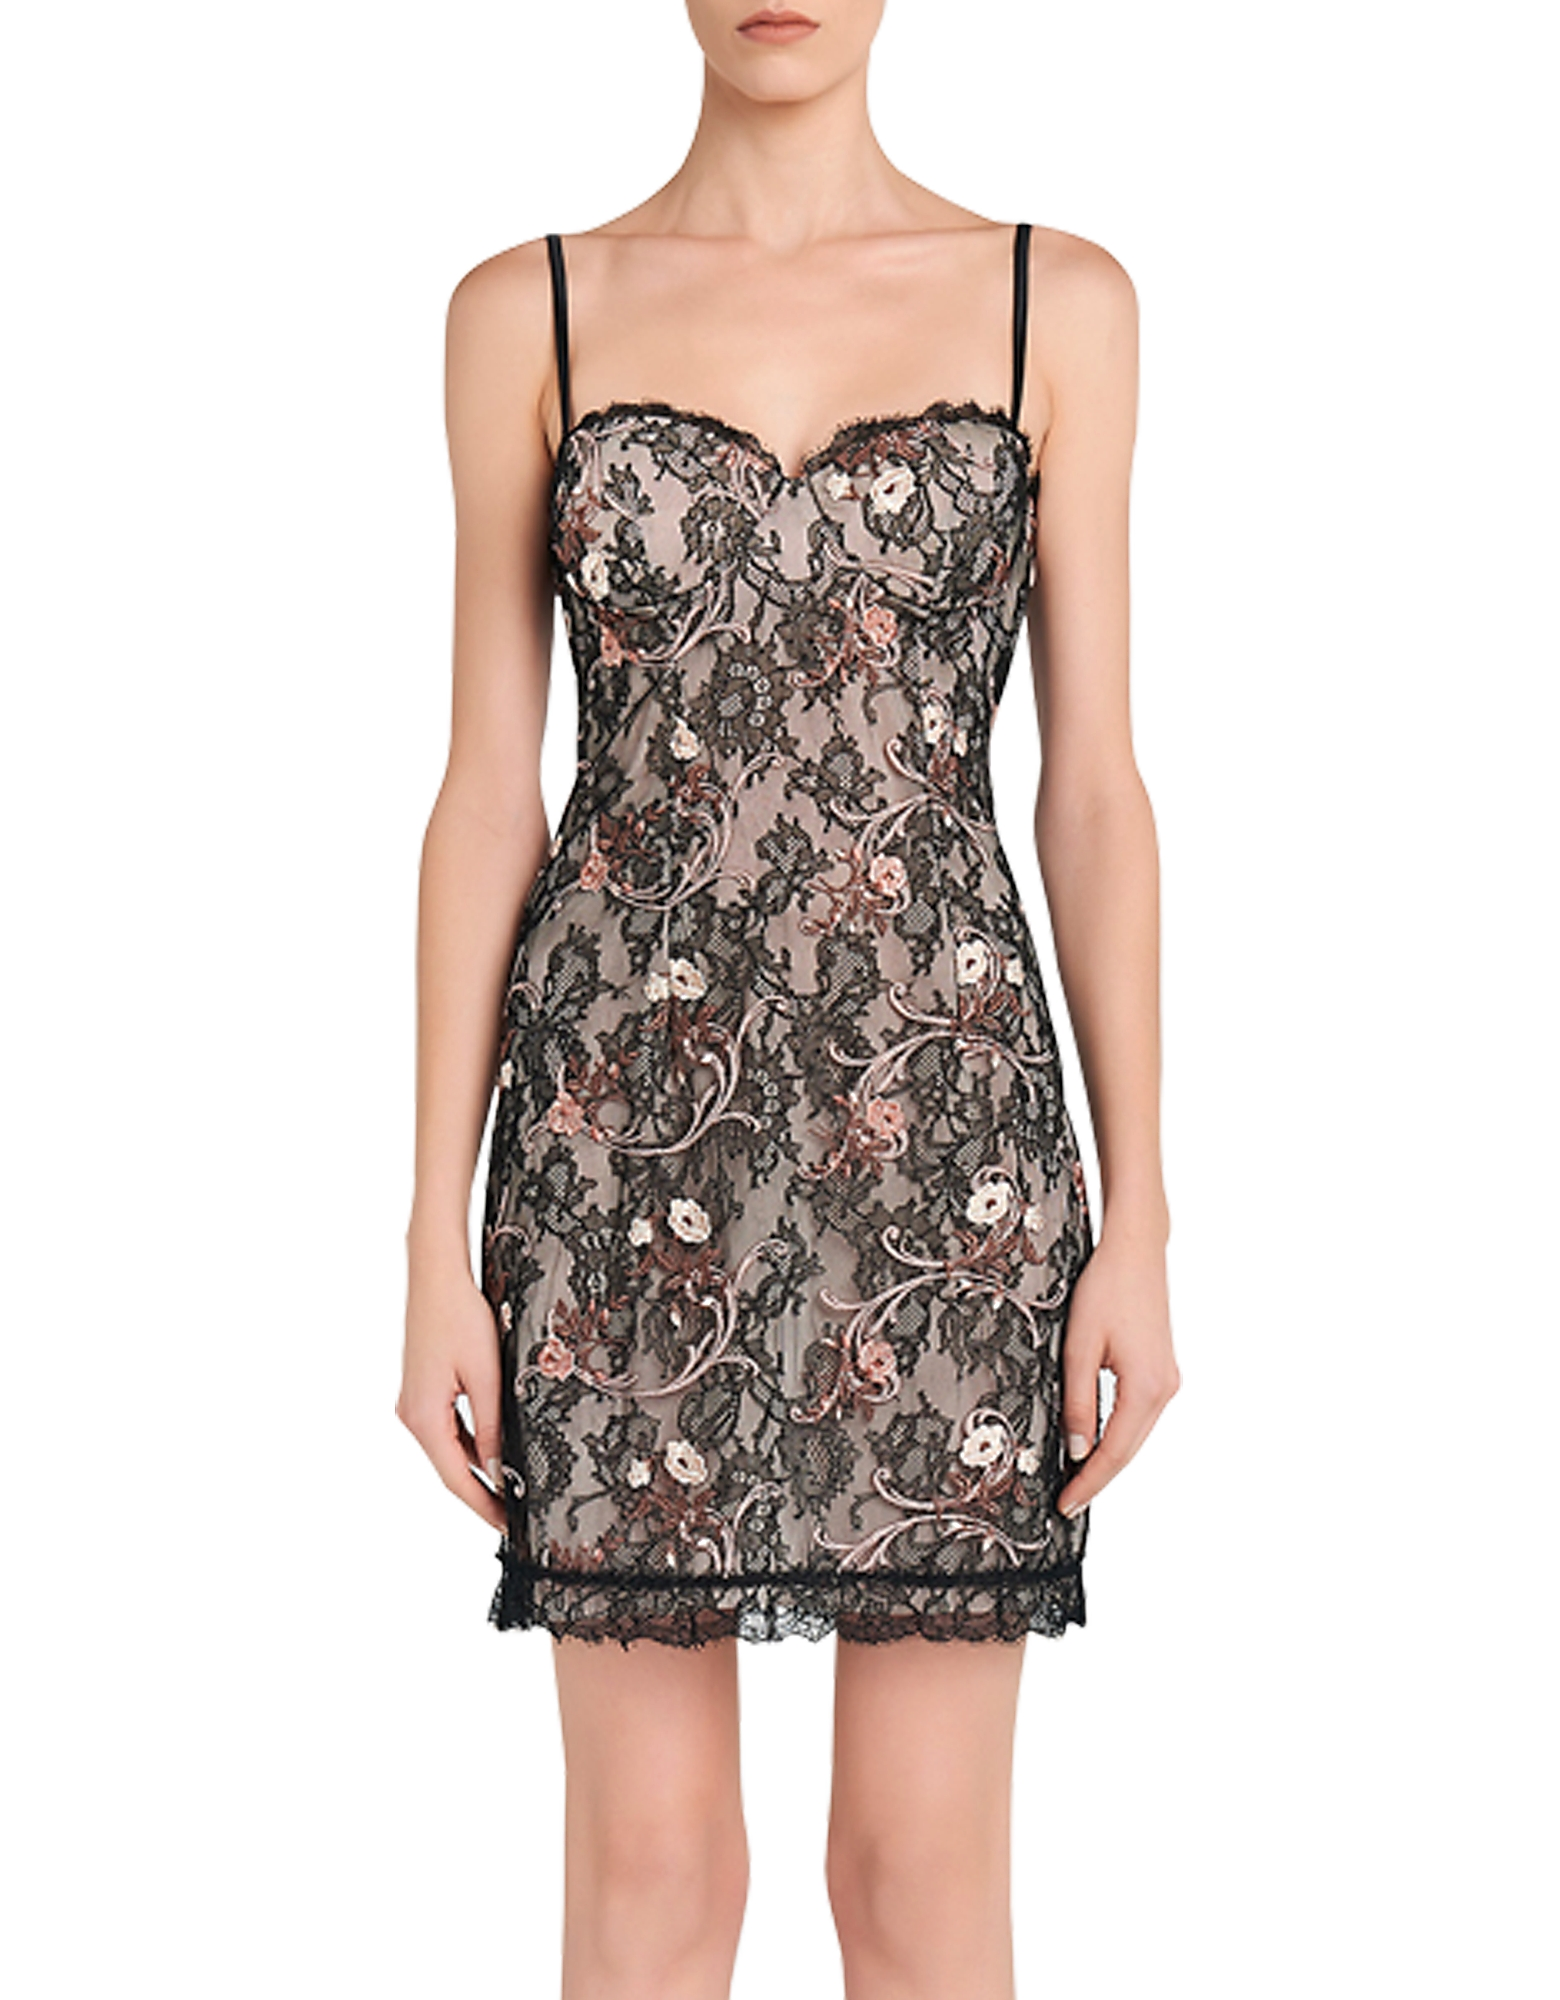 La Perla Dresses & Jumpsuits, Daily Looks Black and Pink Embroidered Lace Dress w/Built-in Bra